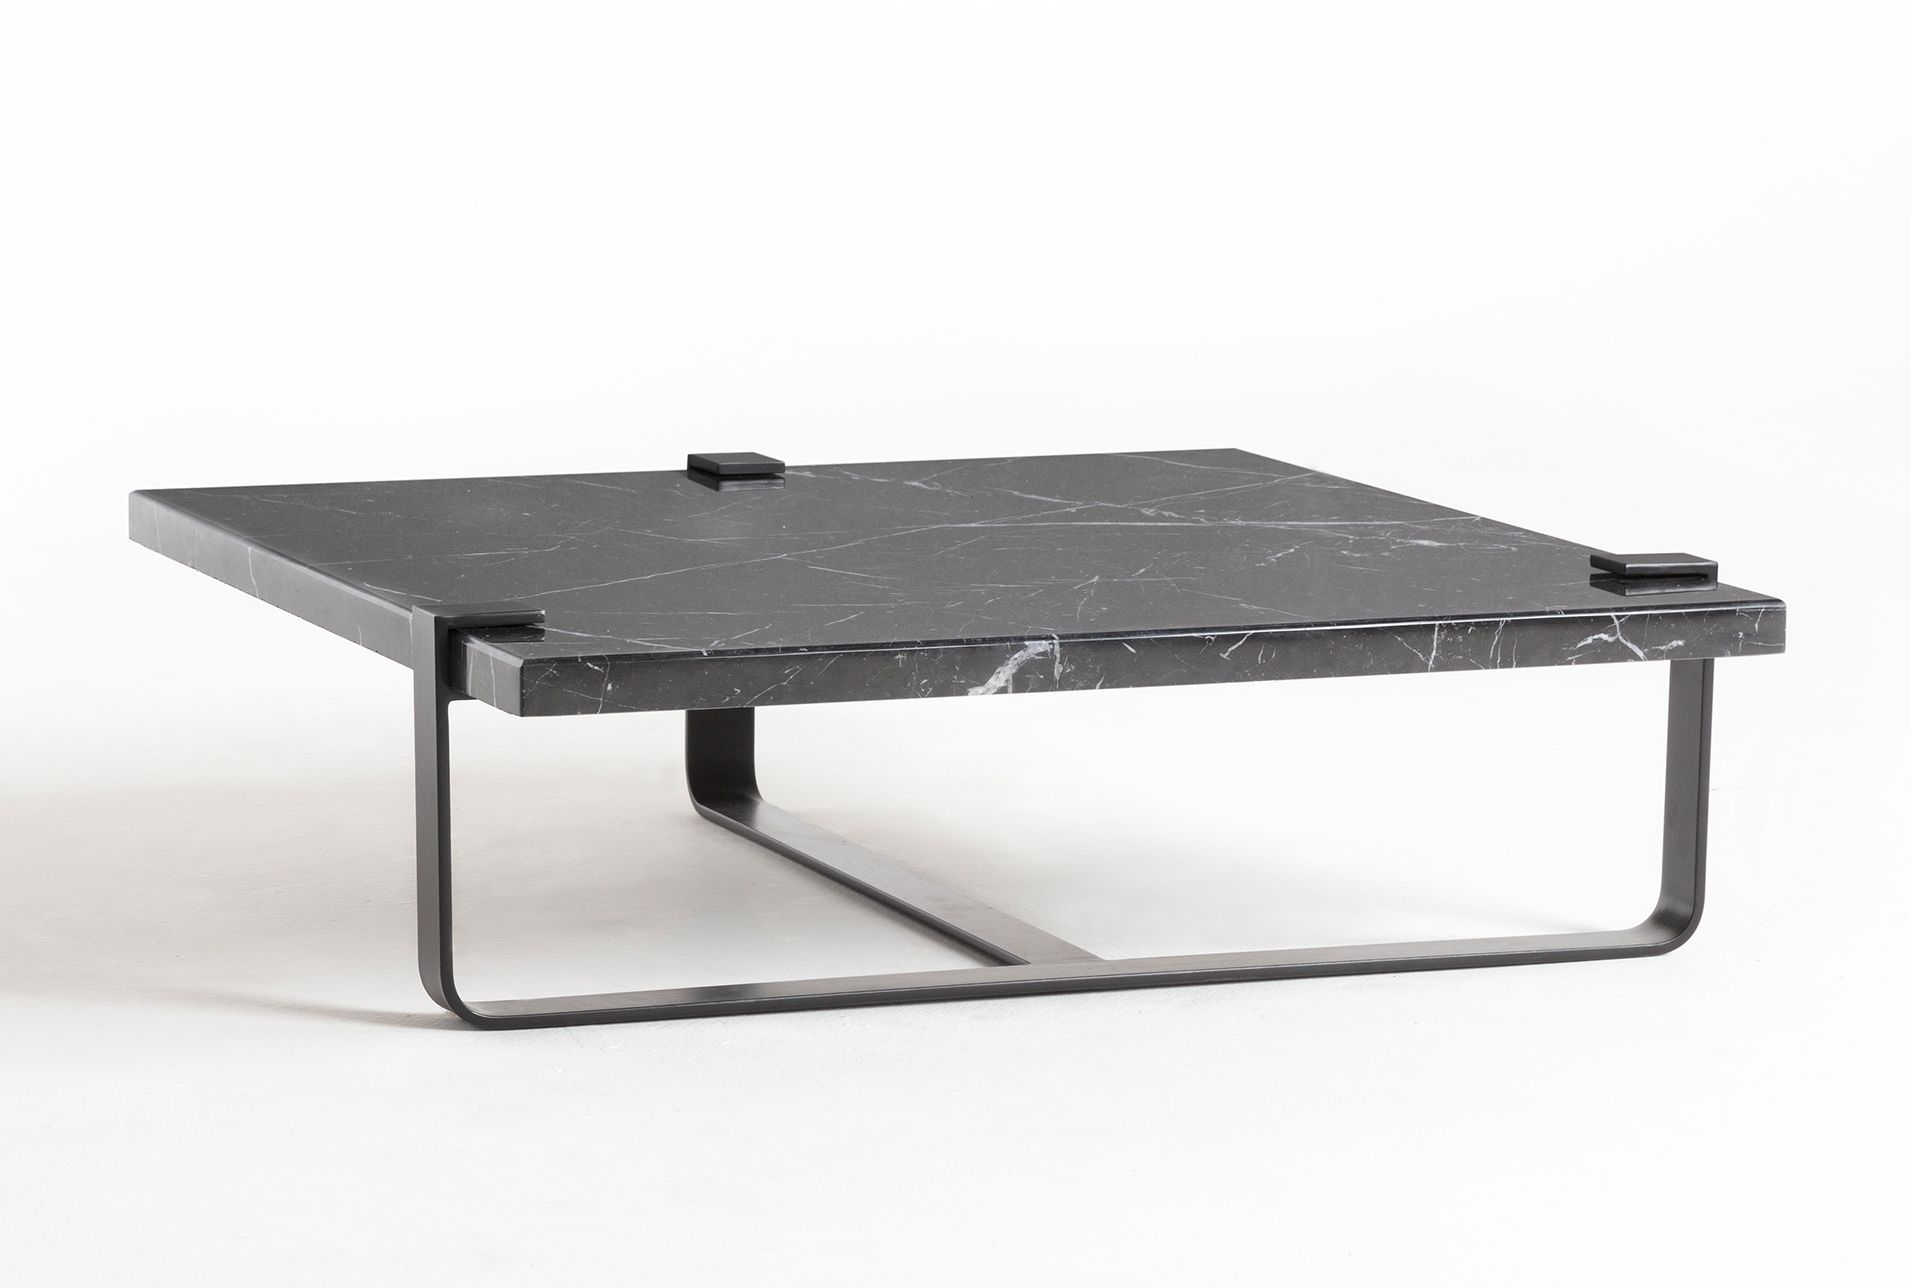 Black Marble Coffee Table By Nate Berkus And Jeremiah Brent Black Marble Coffee Table Marble Coffee Table Coffee Table [ 1288 x 1911 Pixel ]